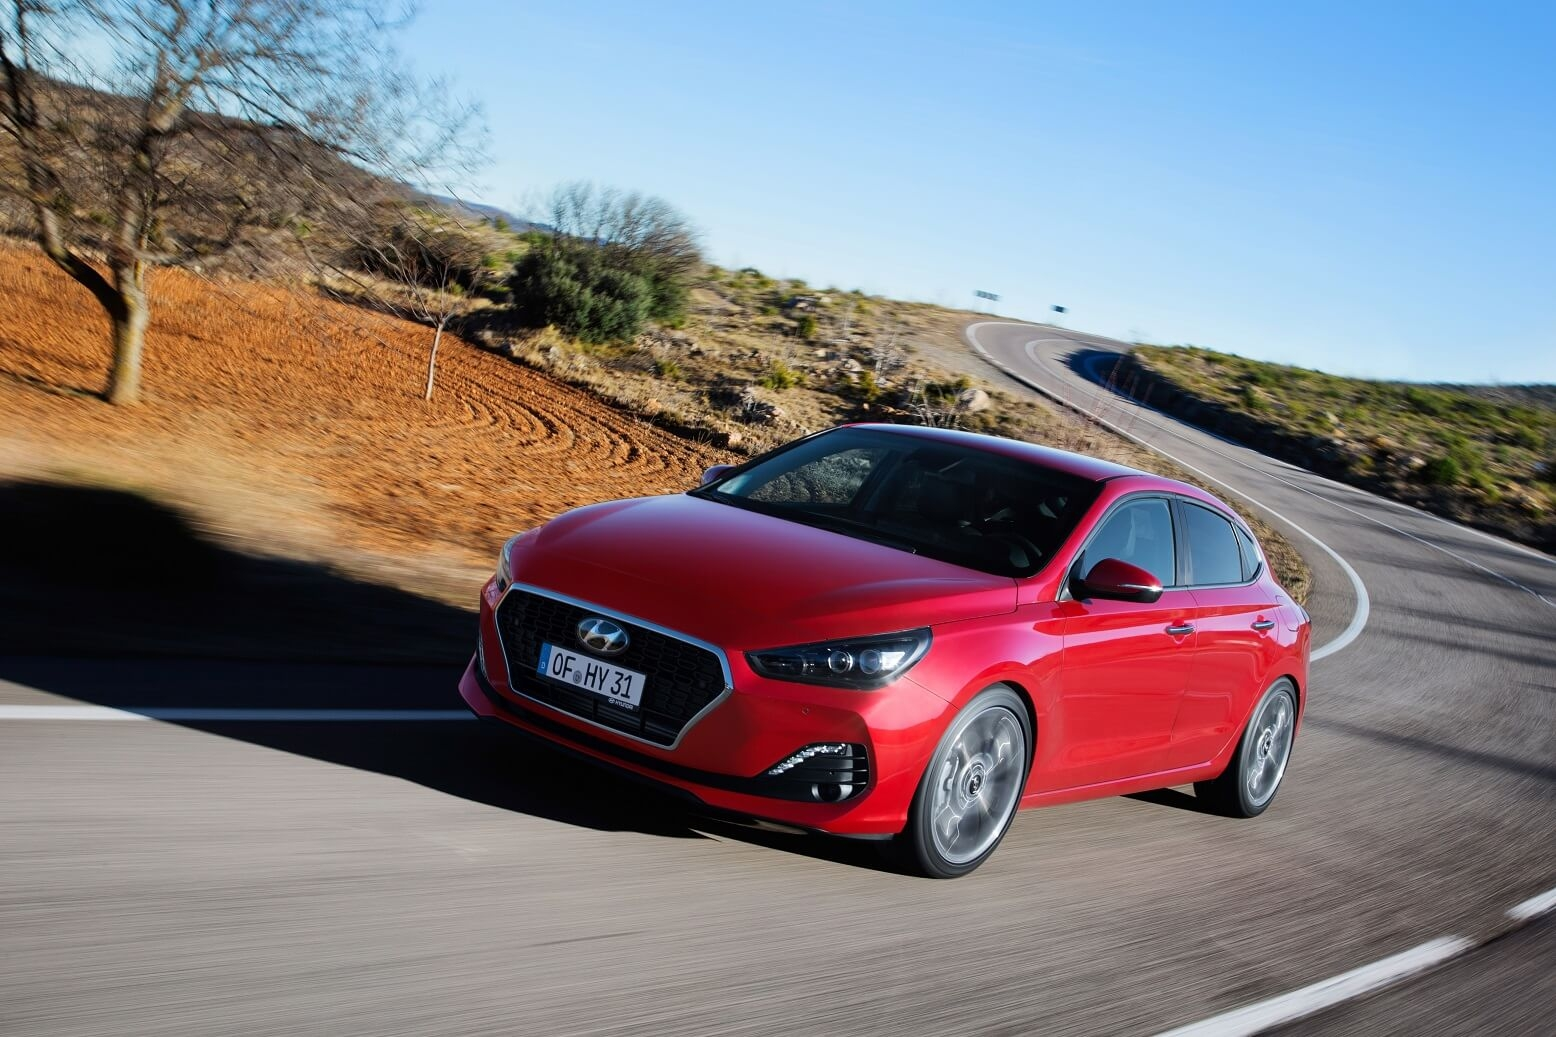 hyundai-all-new-i30-fastback-2018-exterior-10-hires.jpg